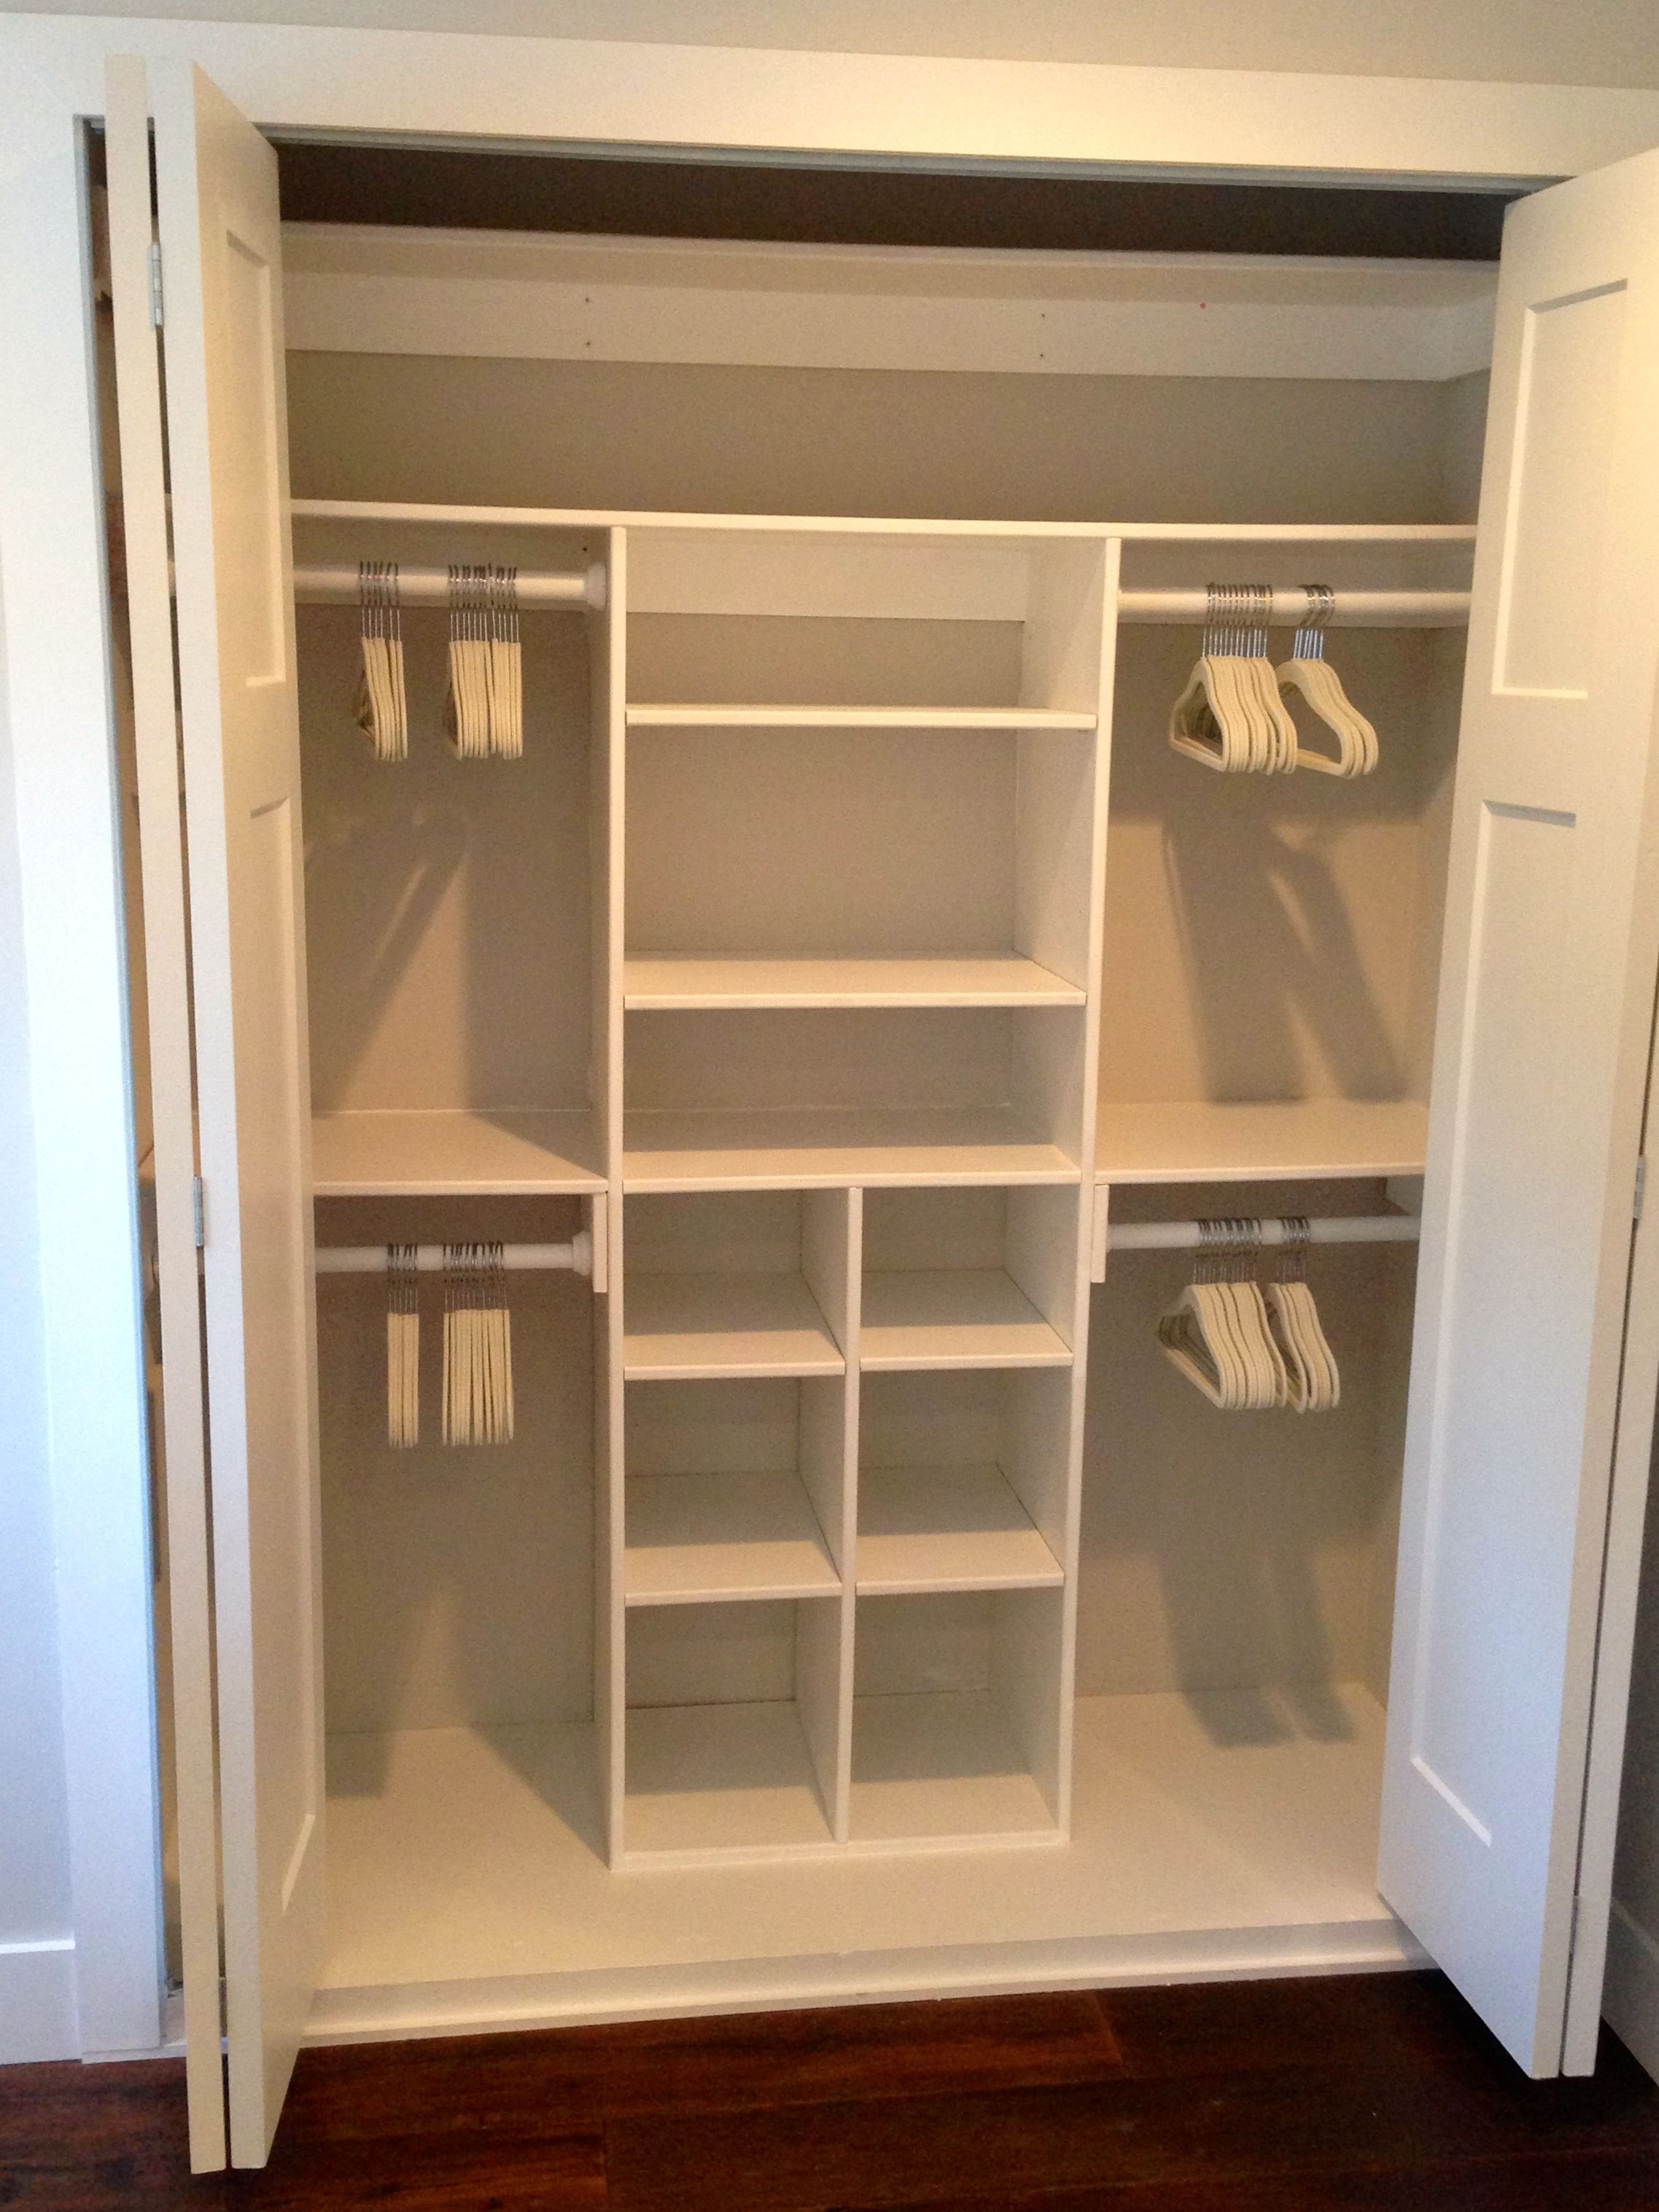 Exceptional Just My Size Closet | Do It Yourself Home Projects From Ana White